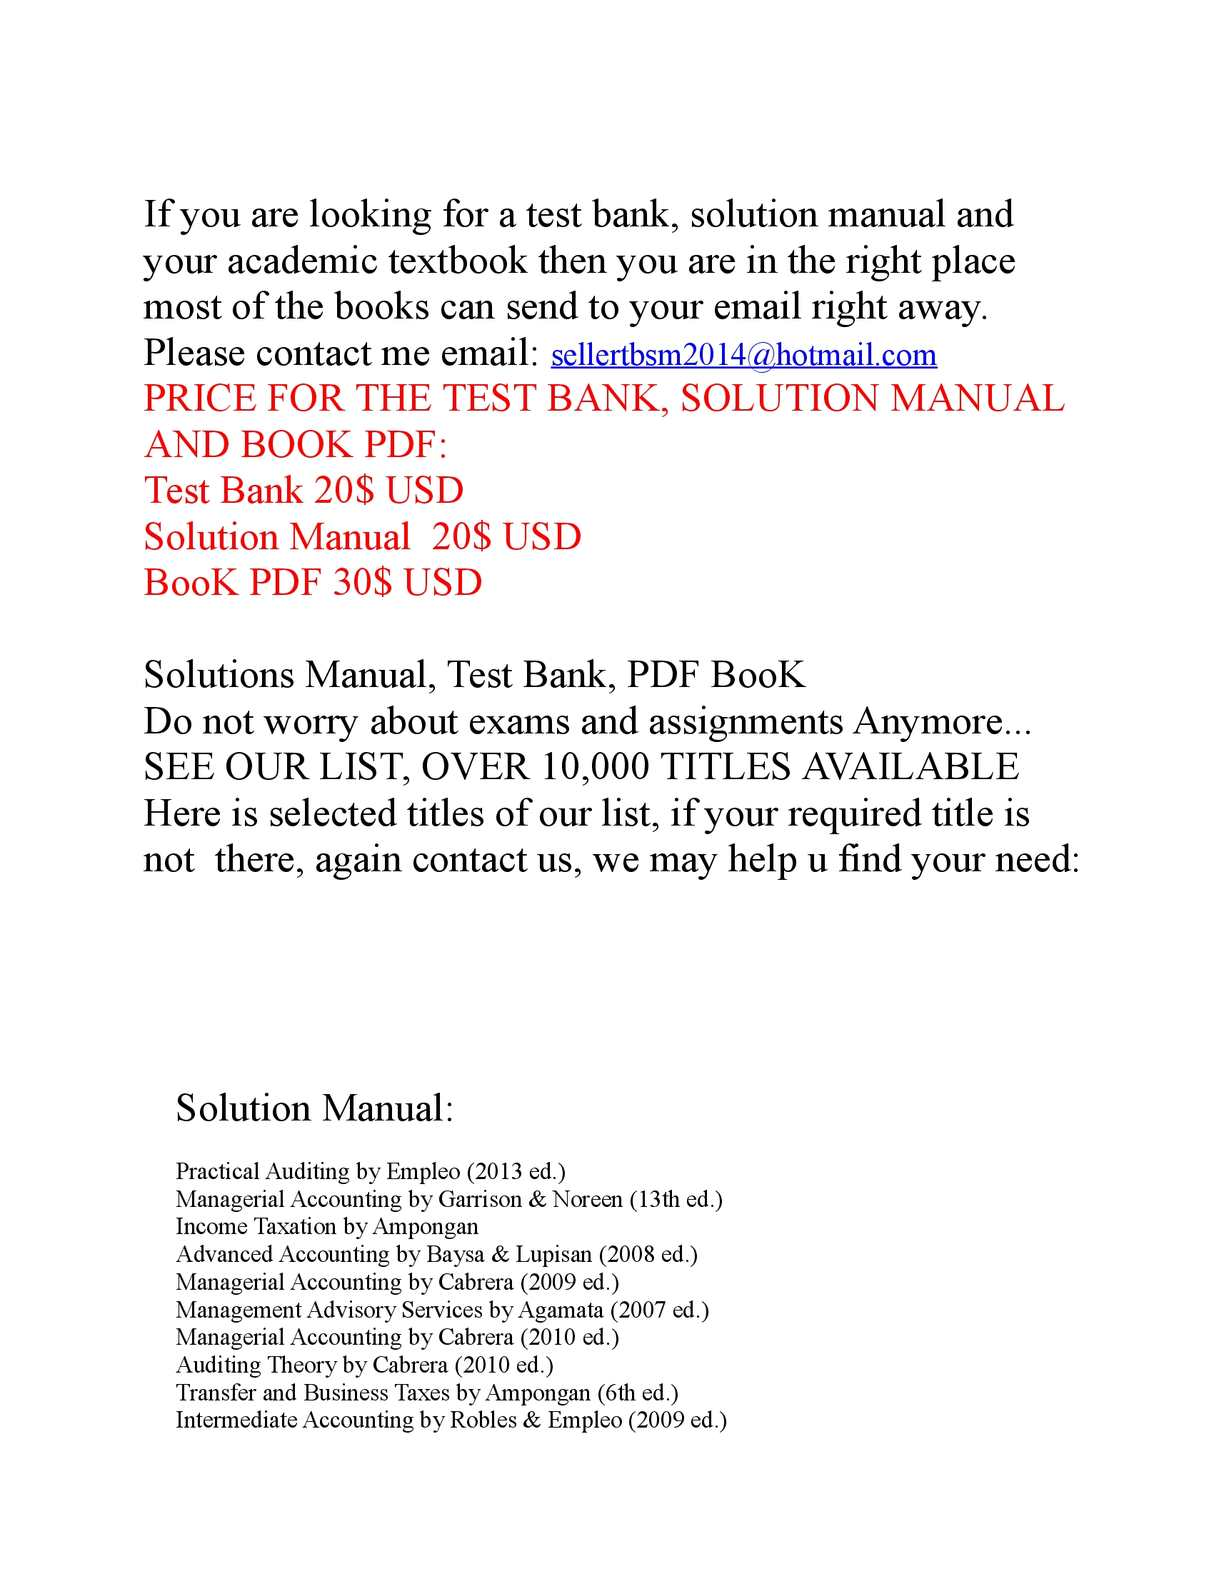 Calaméo - Selling Test Bank, Solution and PDF BooK. Solution Manual  Advanced Accounting ...